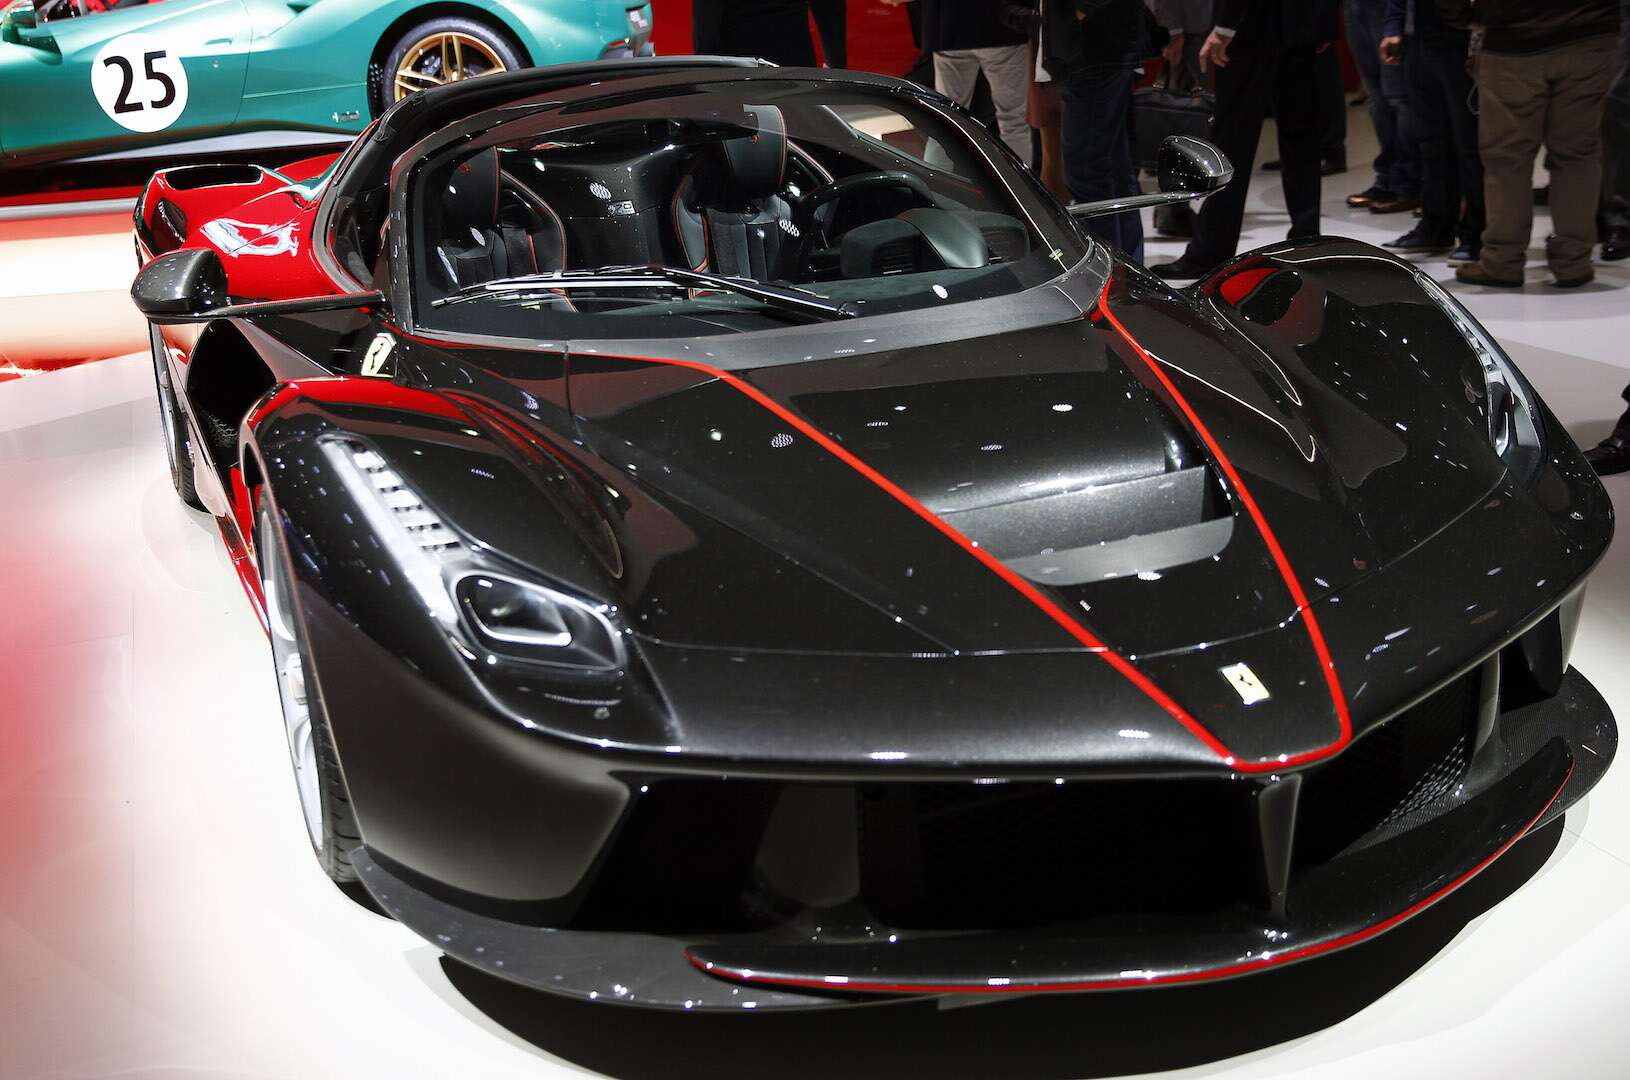 Ferrari Laferrari Aperta 2 Million